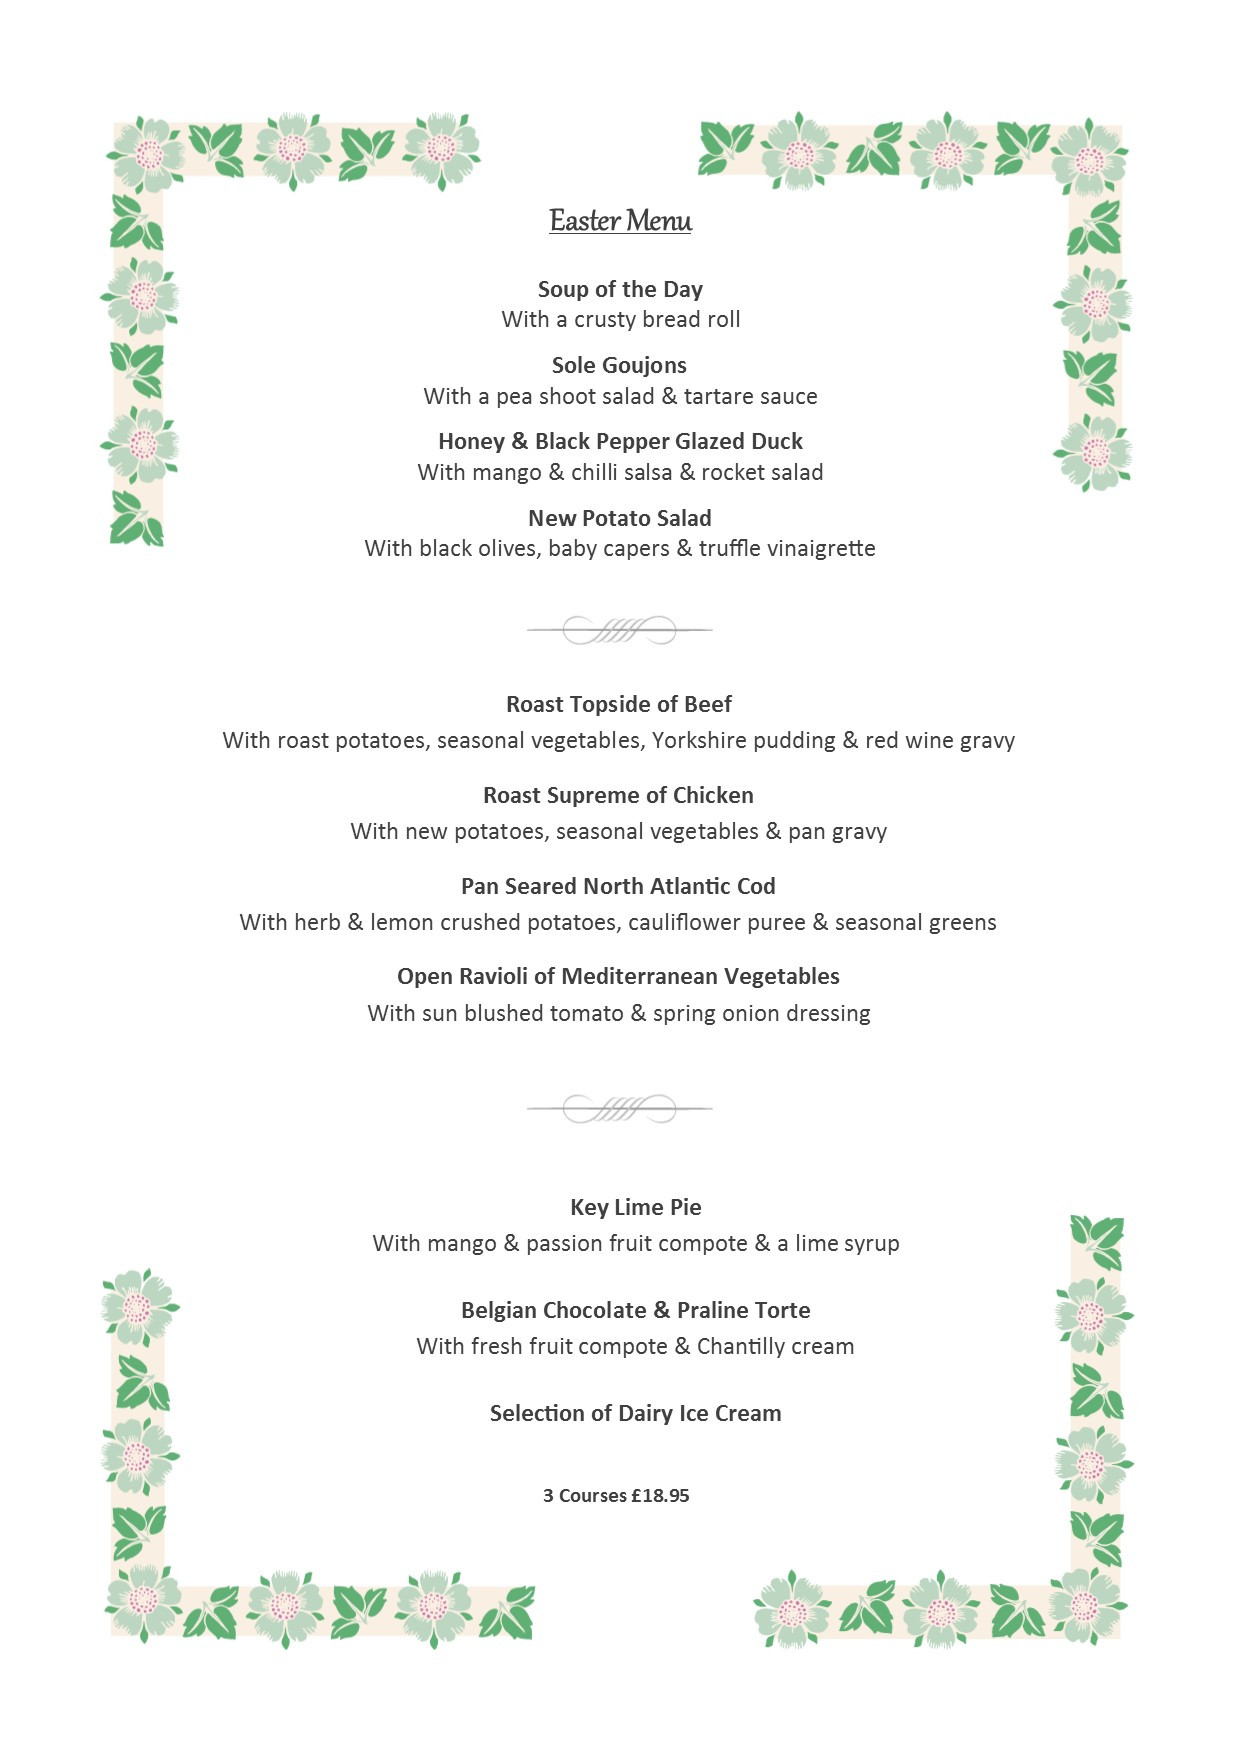 Easter Sunday Dinner Menu  Easter Sunday Menu 16 April 2017